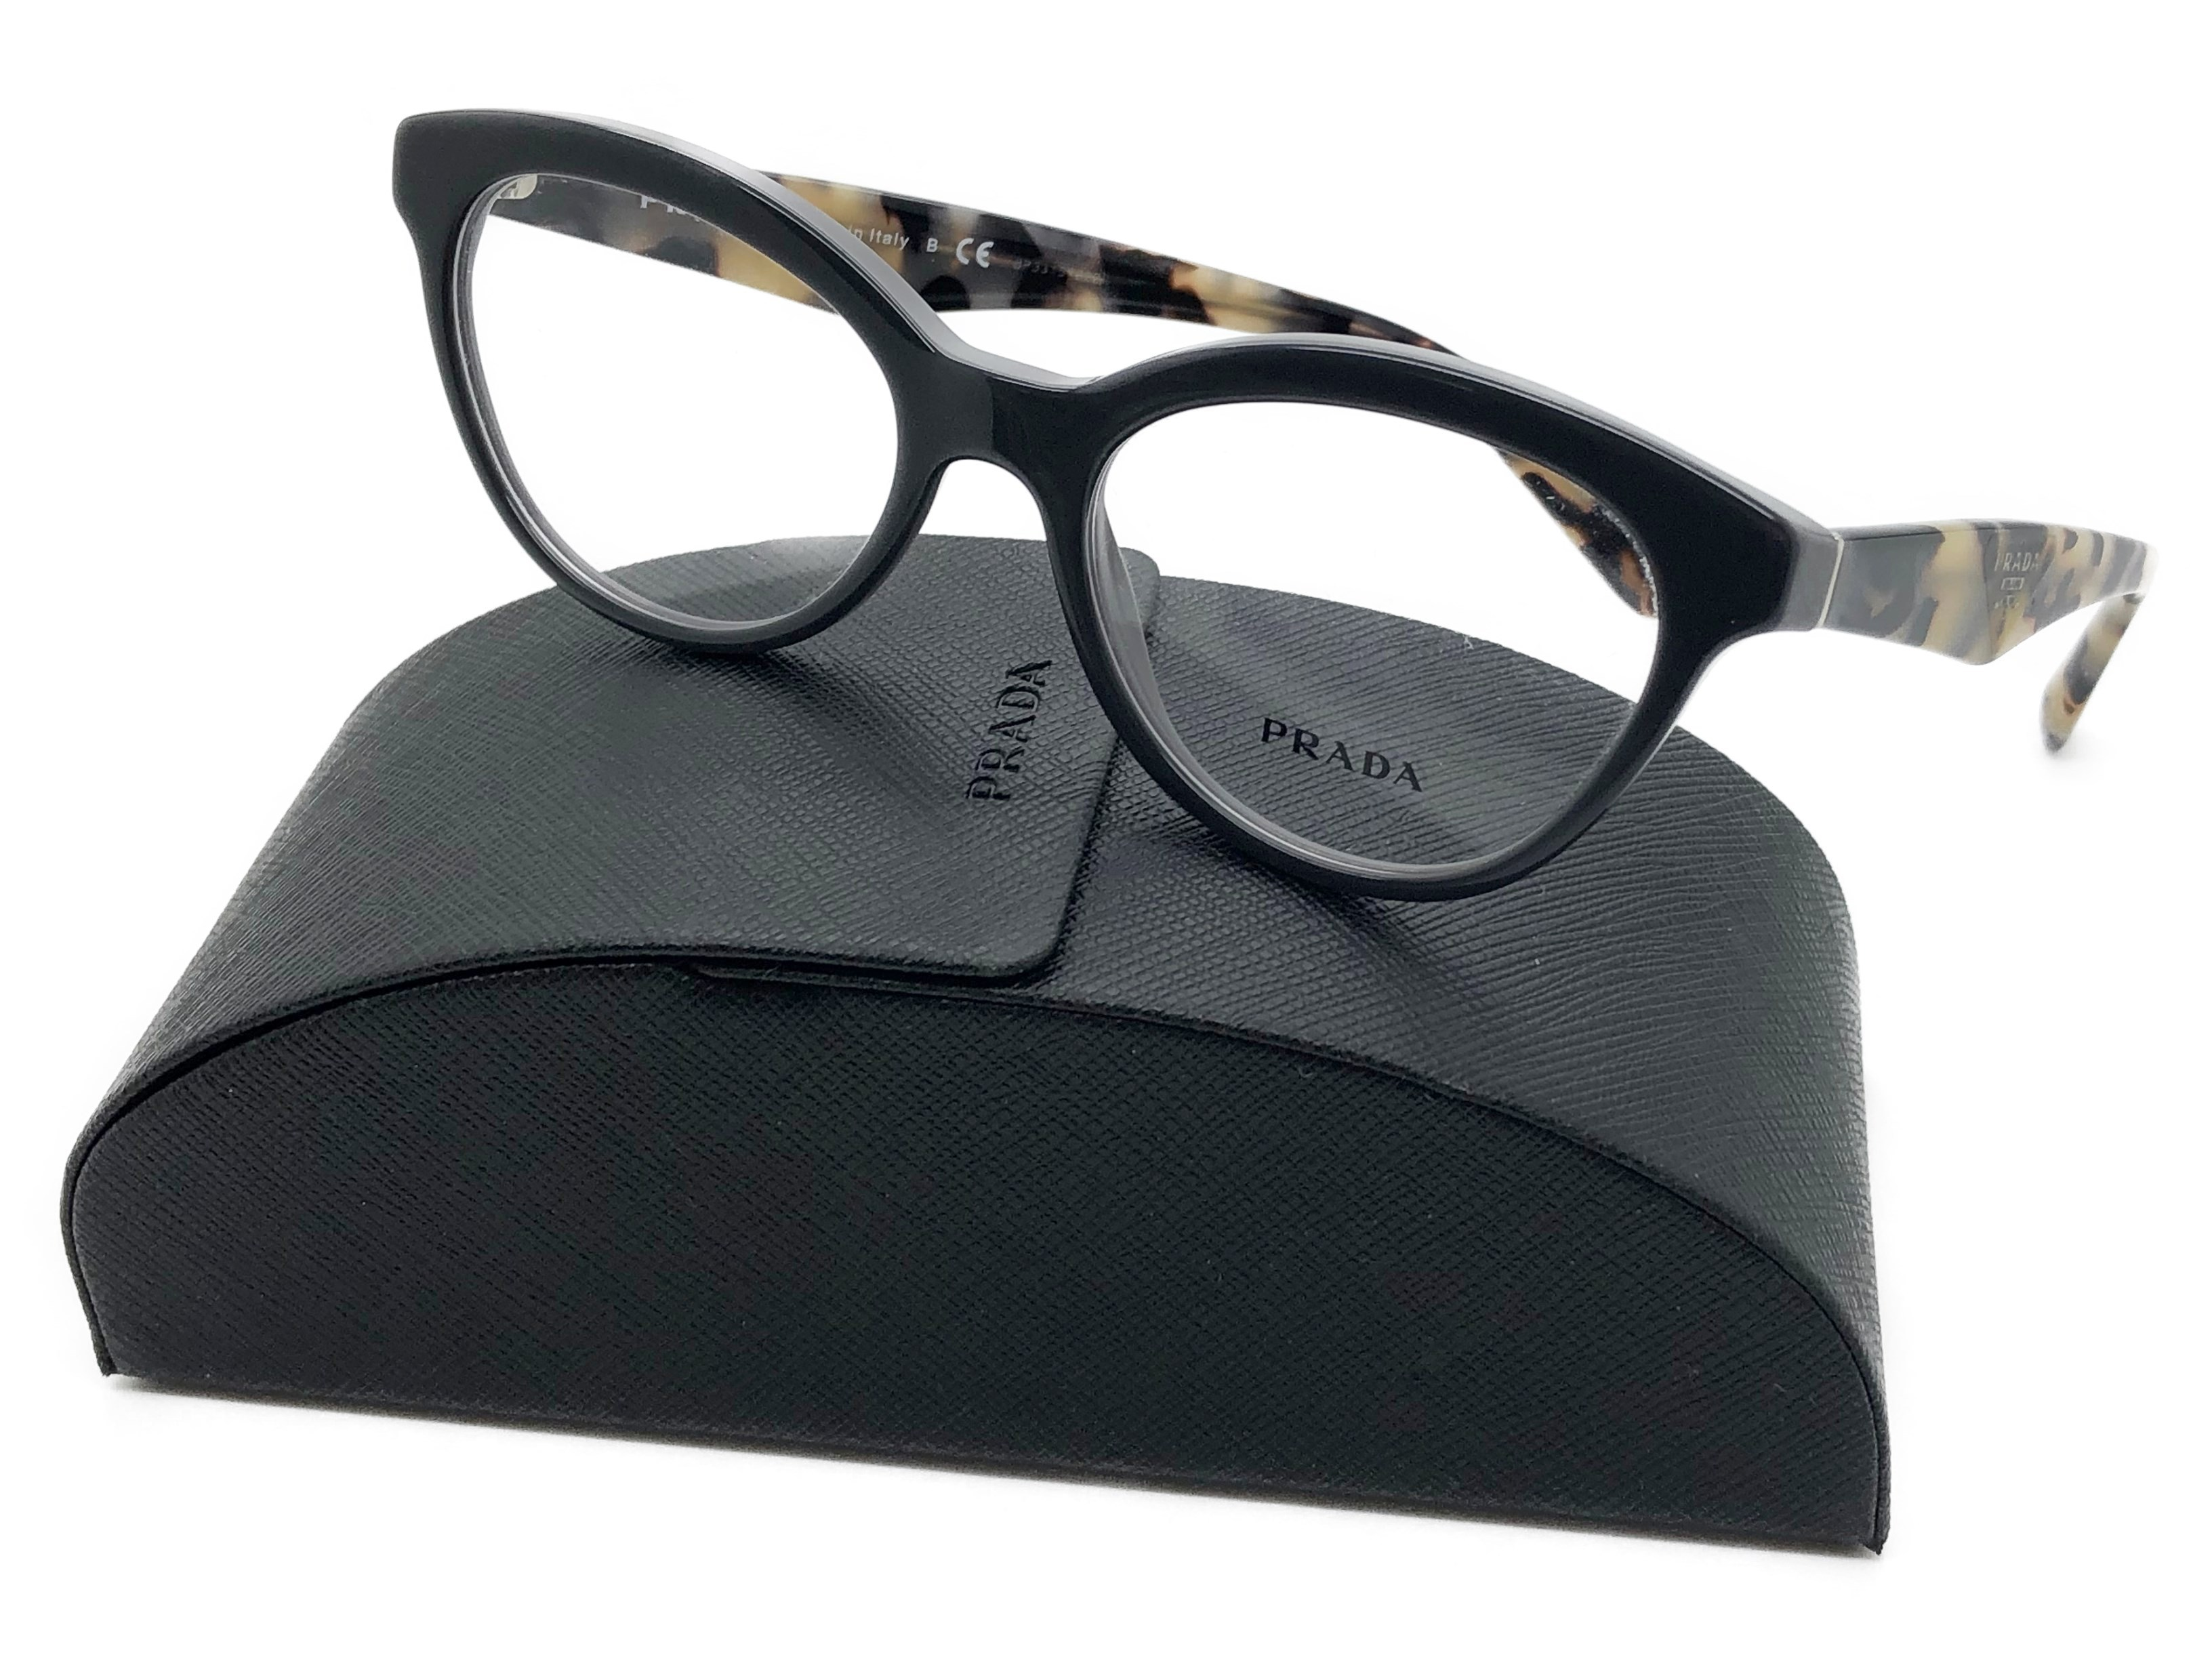 82b1c4d1205d Authentic PRADA Eyeglasses Frames VPR 11R TFN-101 Black/Gray 50/17 -  Walmart.com